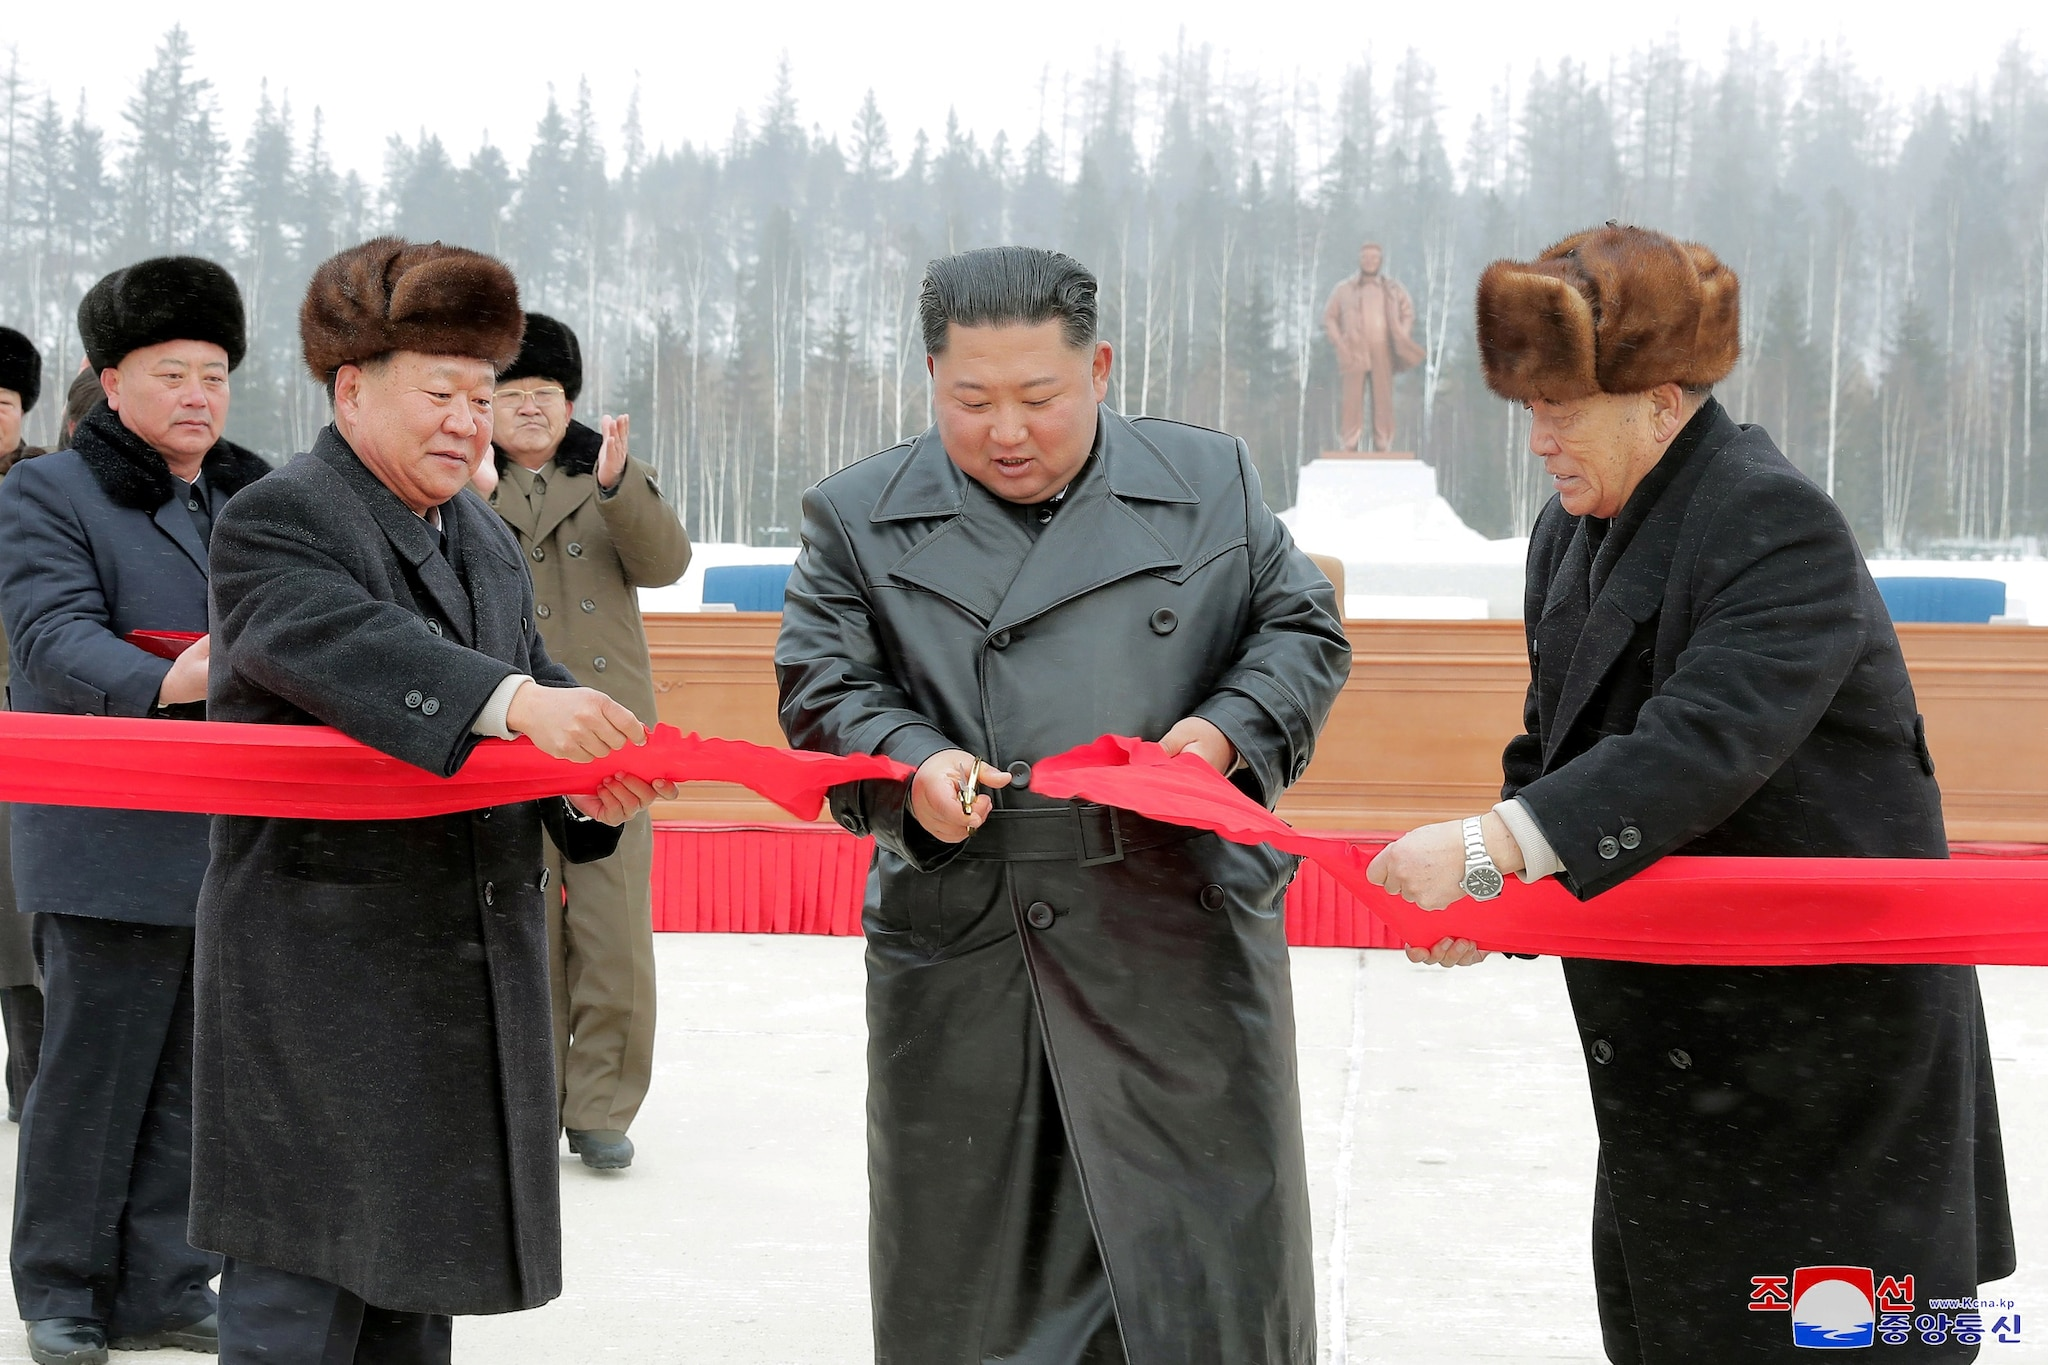 North Korean leader Kim Jong Un accompanied by Pak Pong Ju, vice-chairman of the State Affairs Commission of the DPRK, cuts the ribbon during a ceremony at the township of Samjiyon County, North Korea, in this undated picture released by North Korea's Central News Agency (KCNA) on December 2, 2019. KCNA via REUTERS